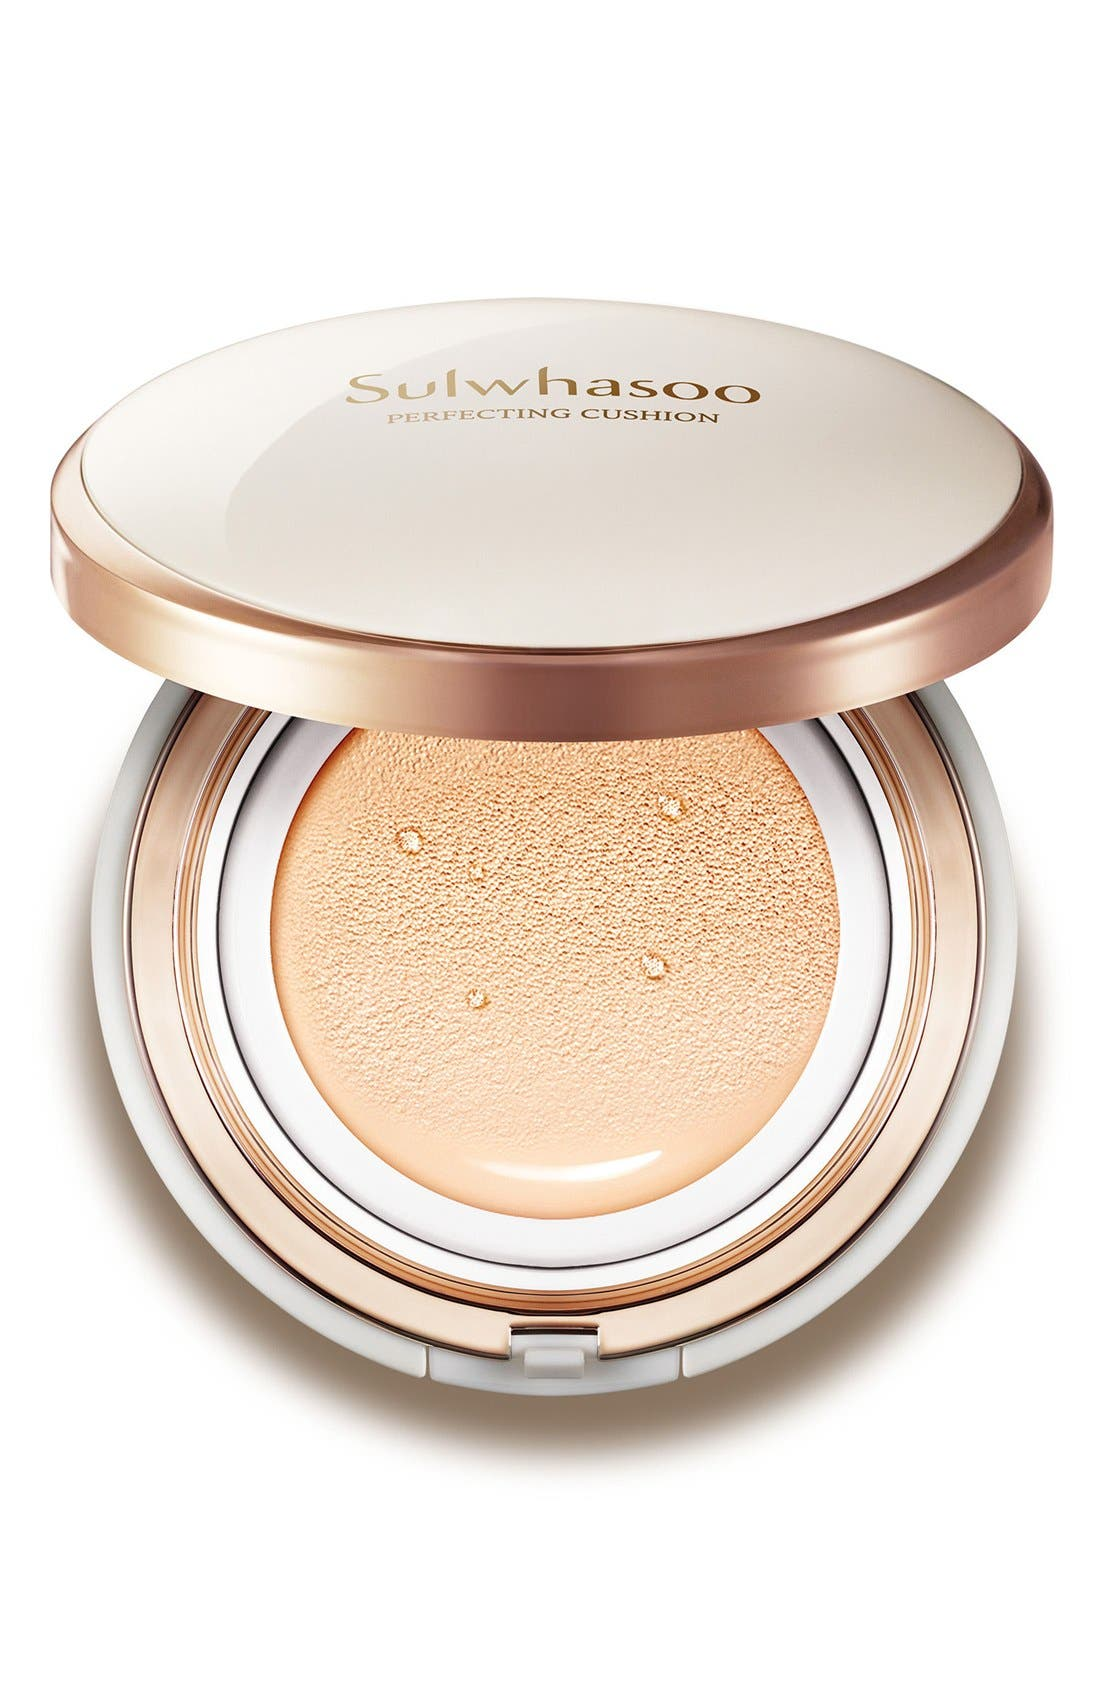 'Perfecting Cushion' Foundation Compact,                             Main thumbnail 1, color,                             23 MEDIUM BEIGE